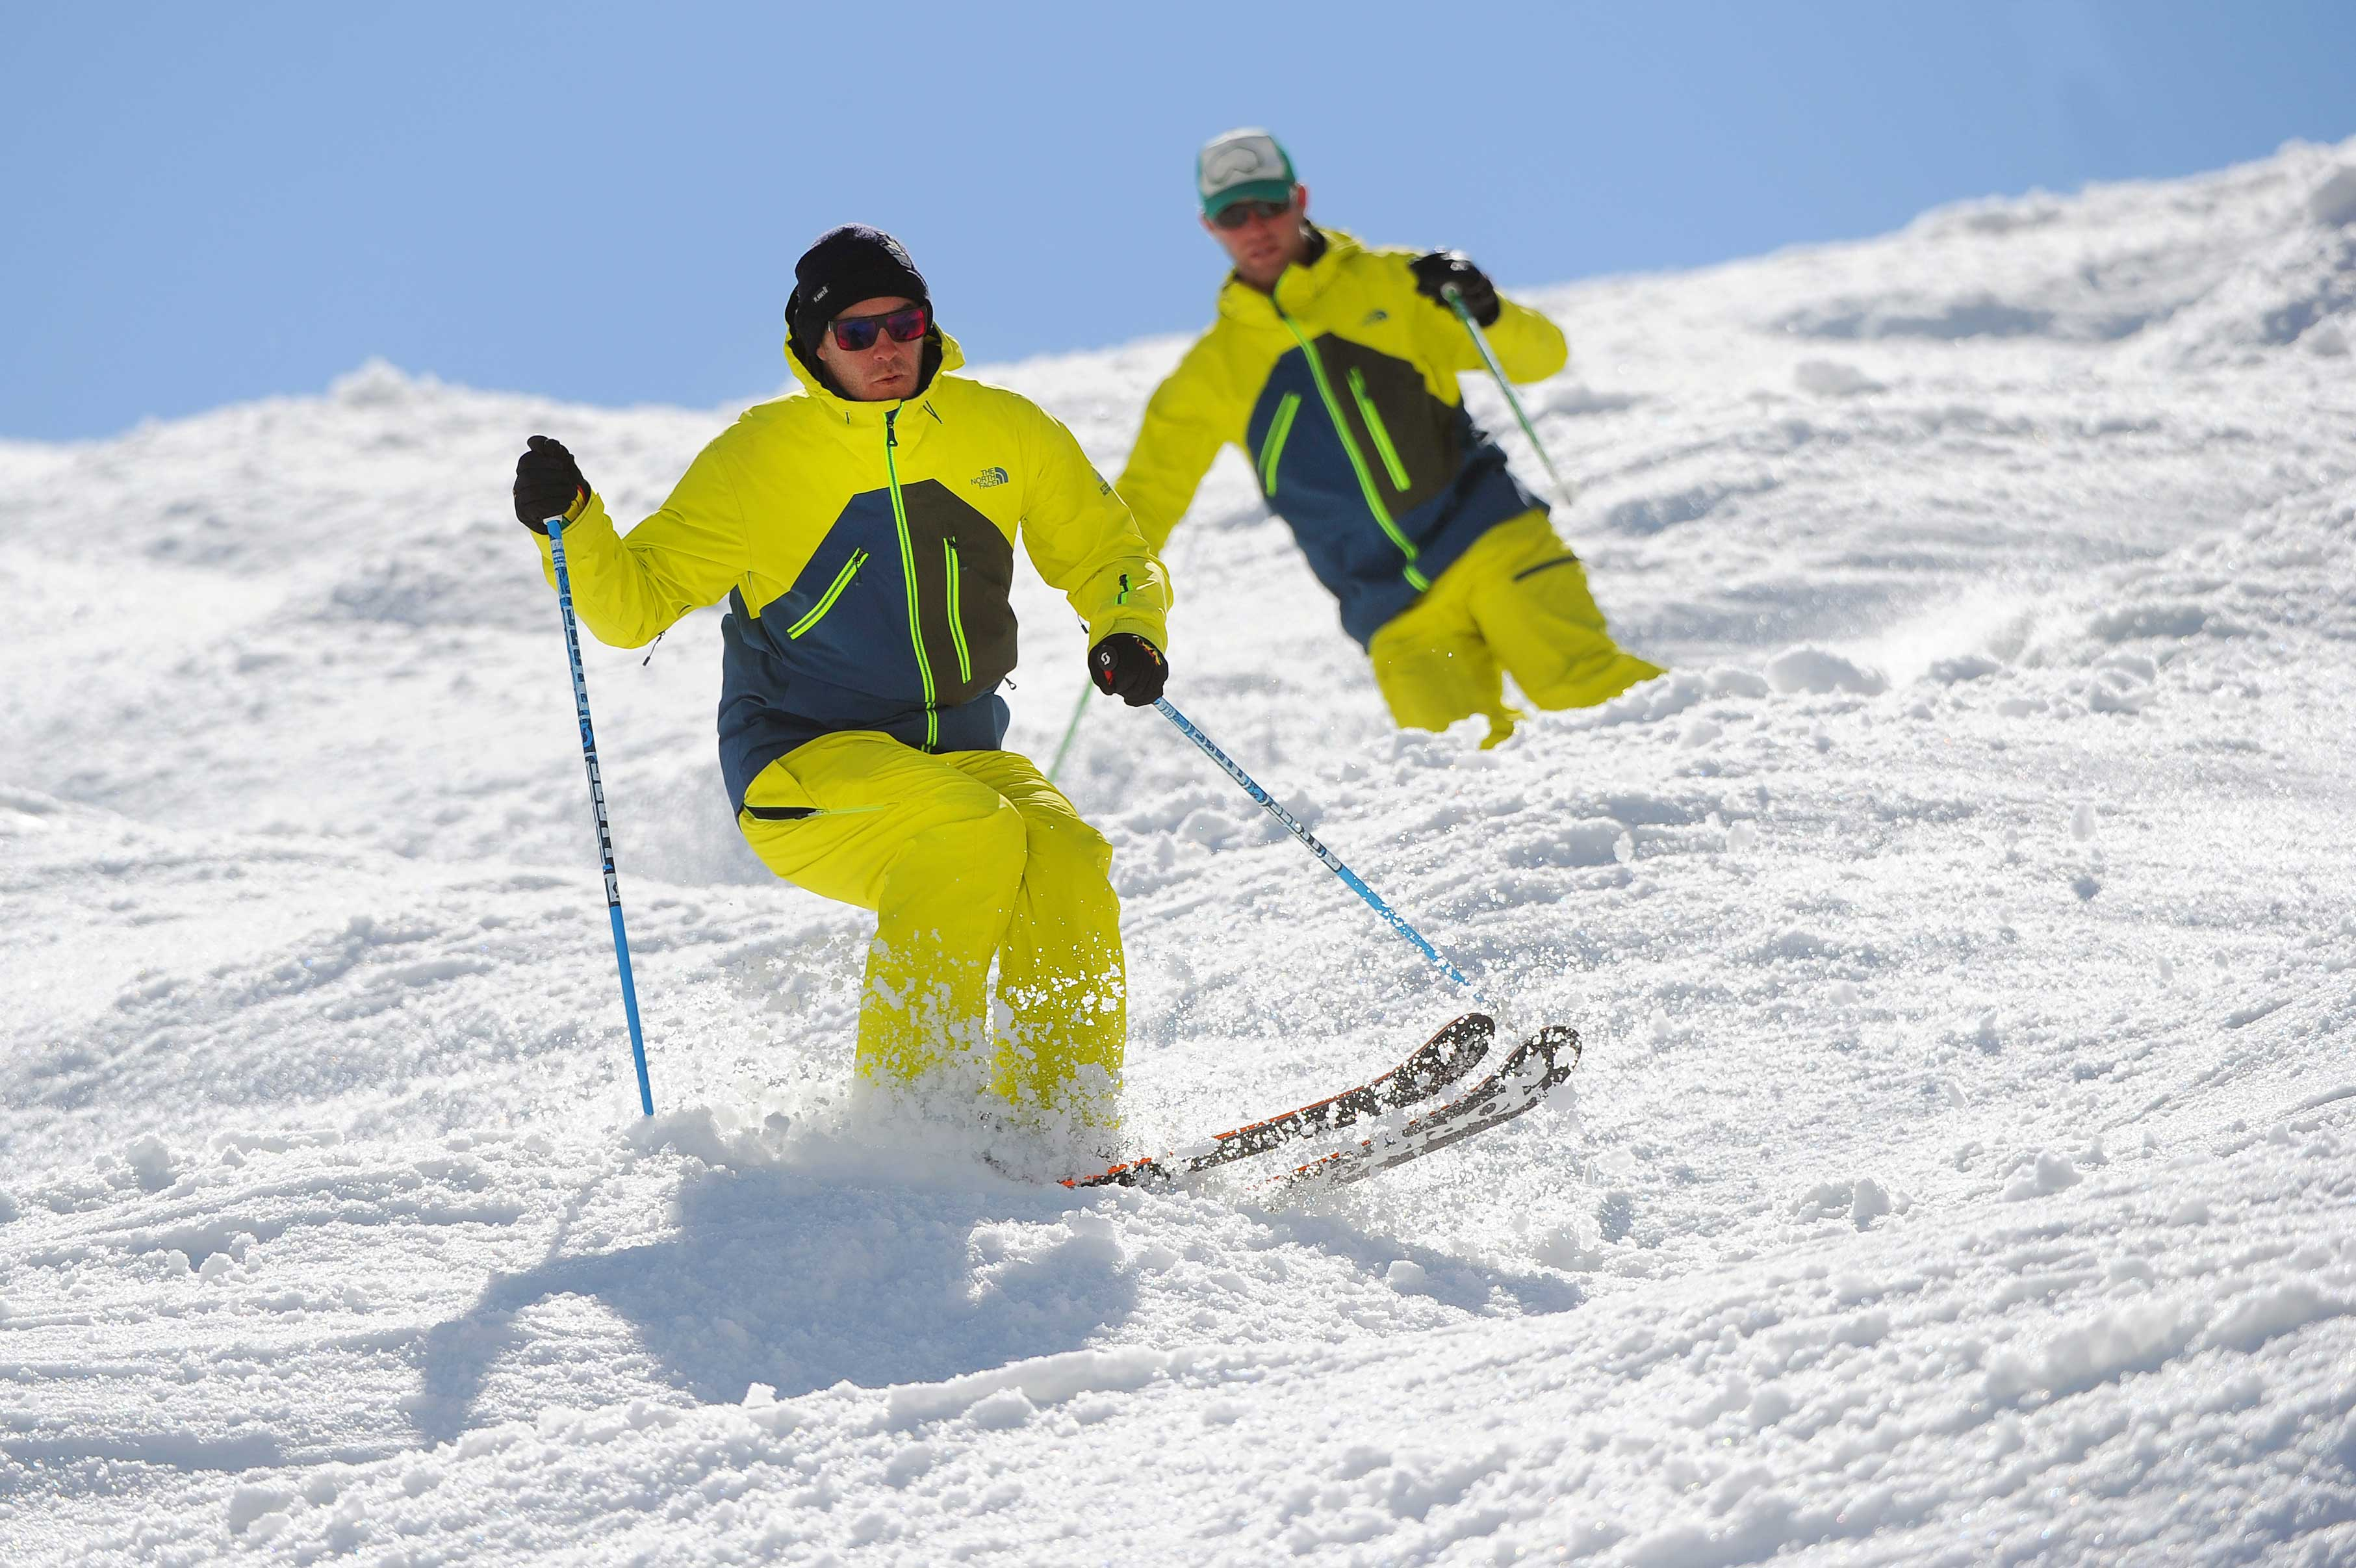 New Generation Ski and Snowboard School - Adults' Lessons